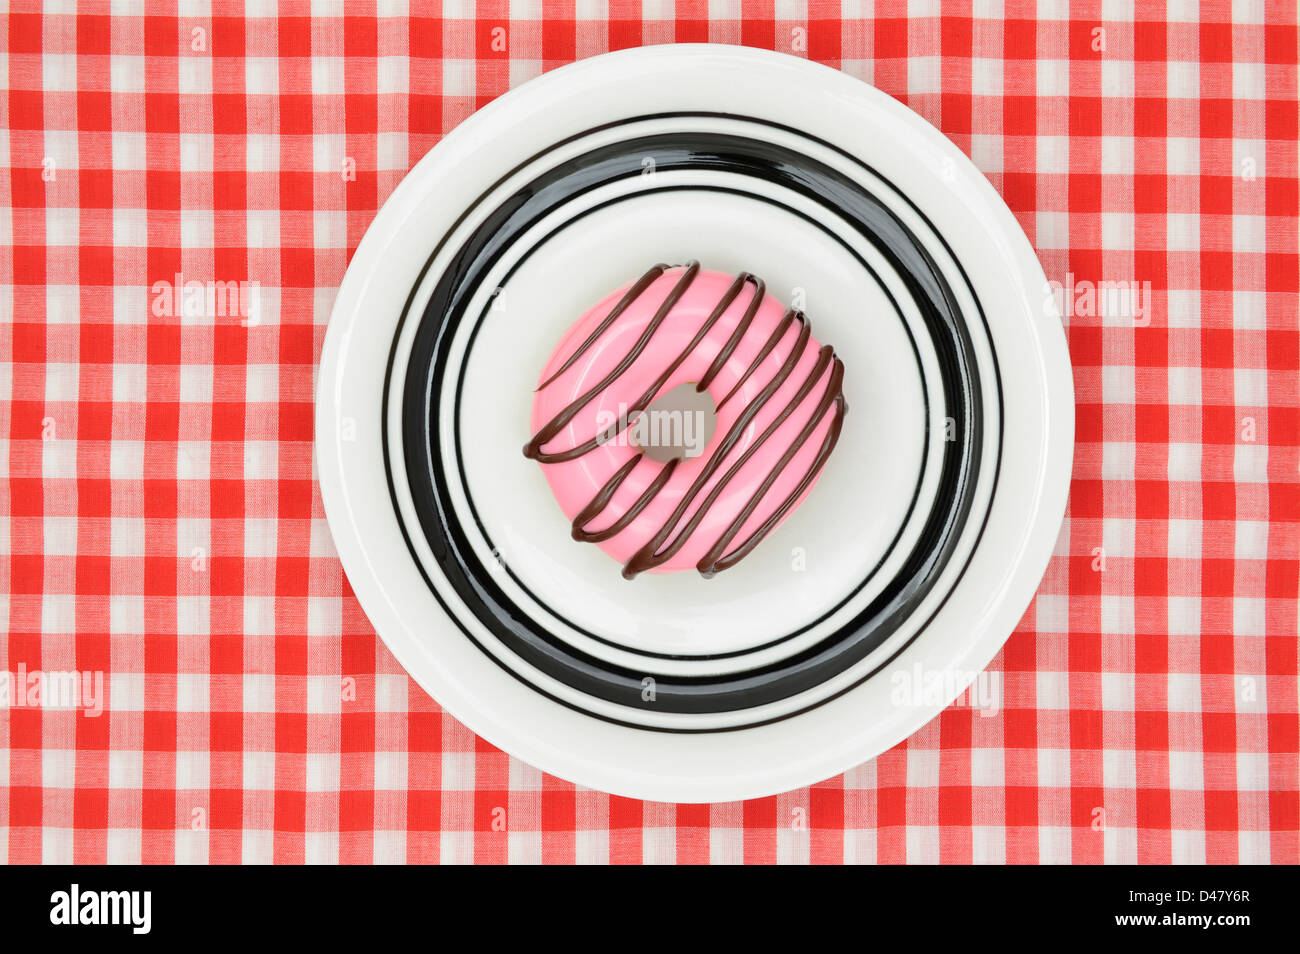 A donut with pink icing and drizzled chocolate, on a white plate which is placed on a red-and-white checkered tablecloth, - Stock Image